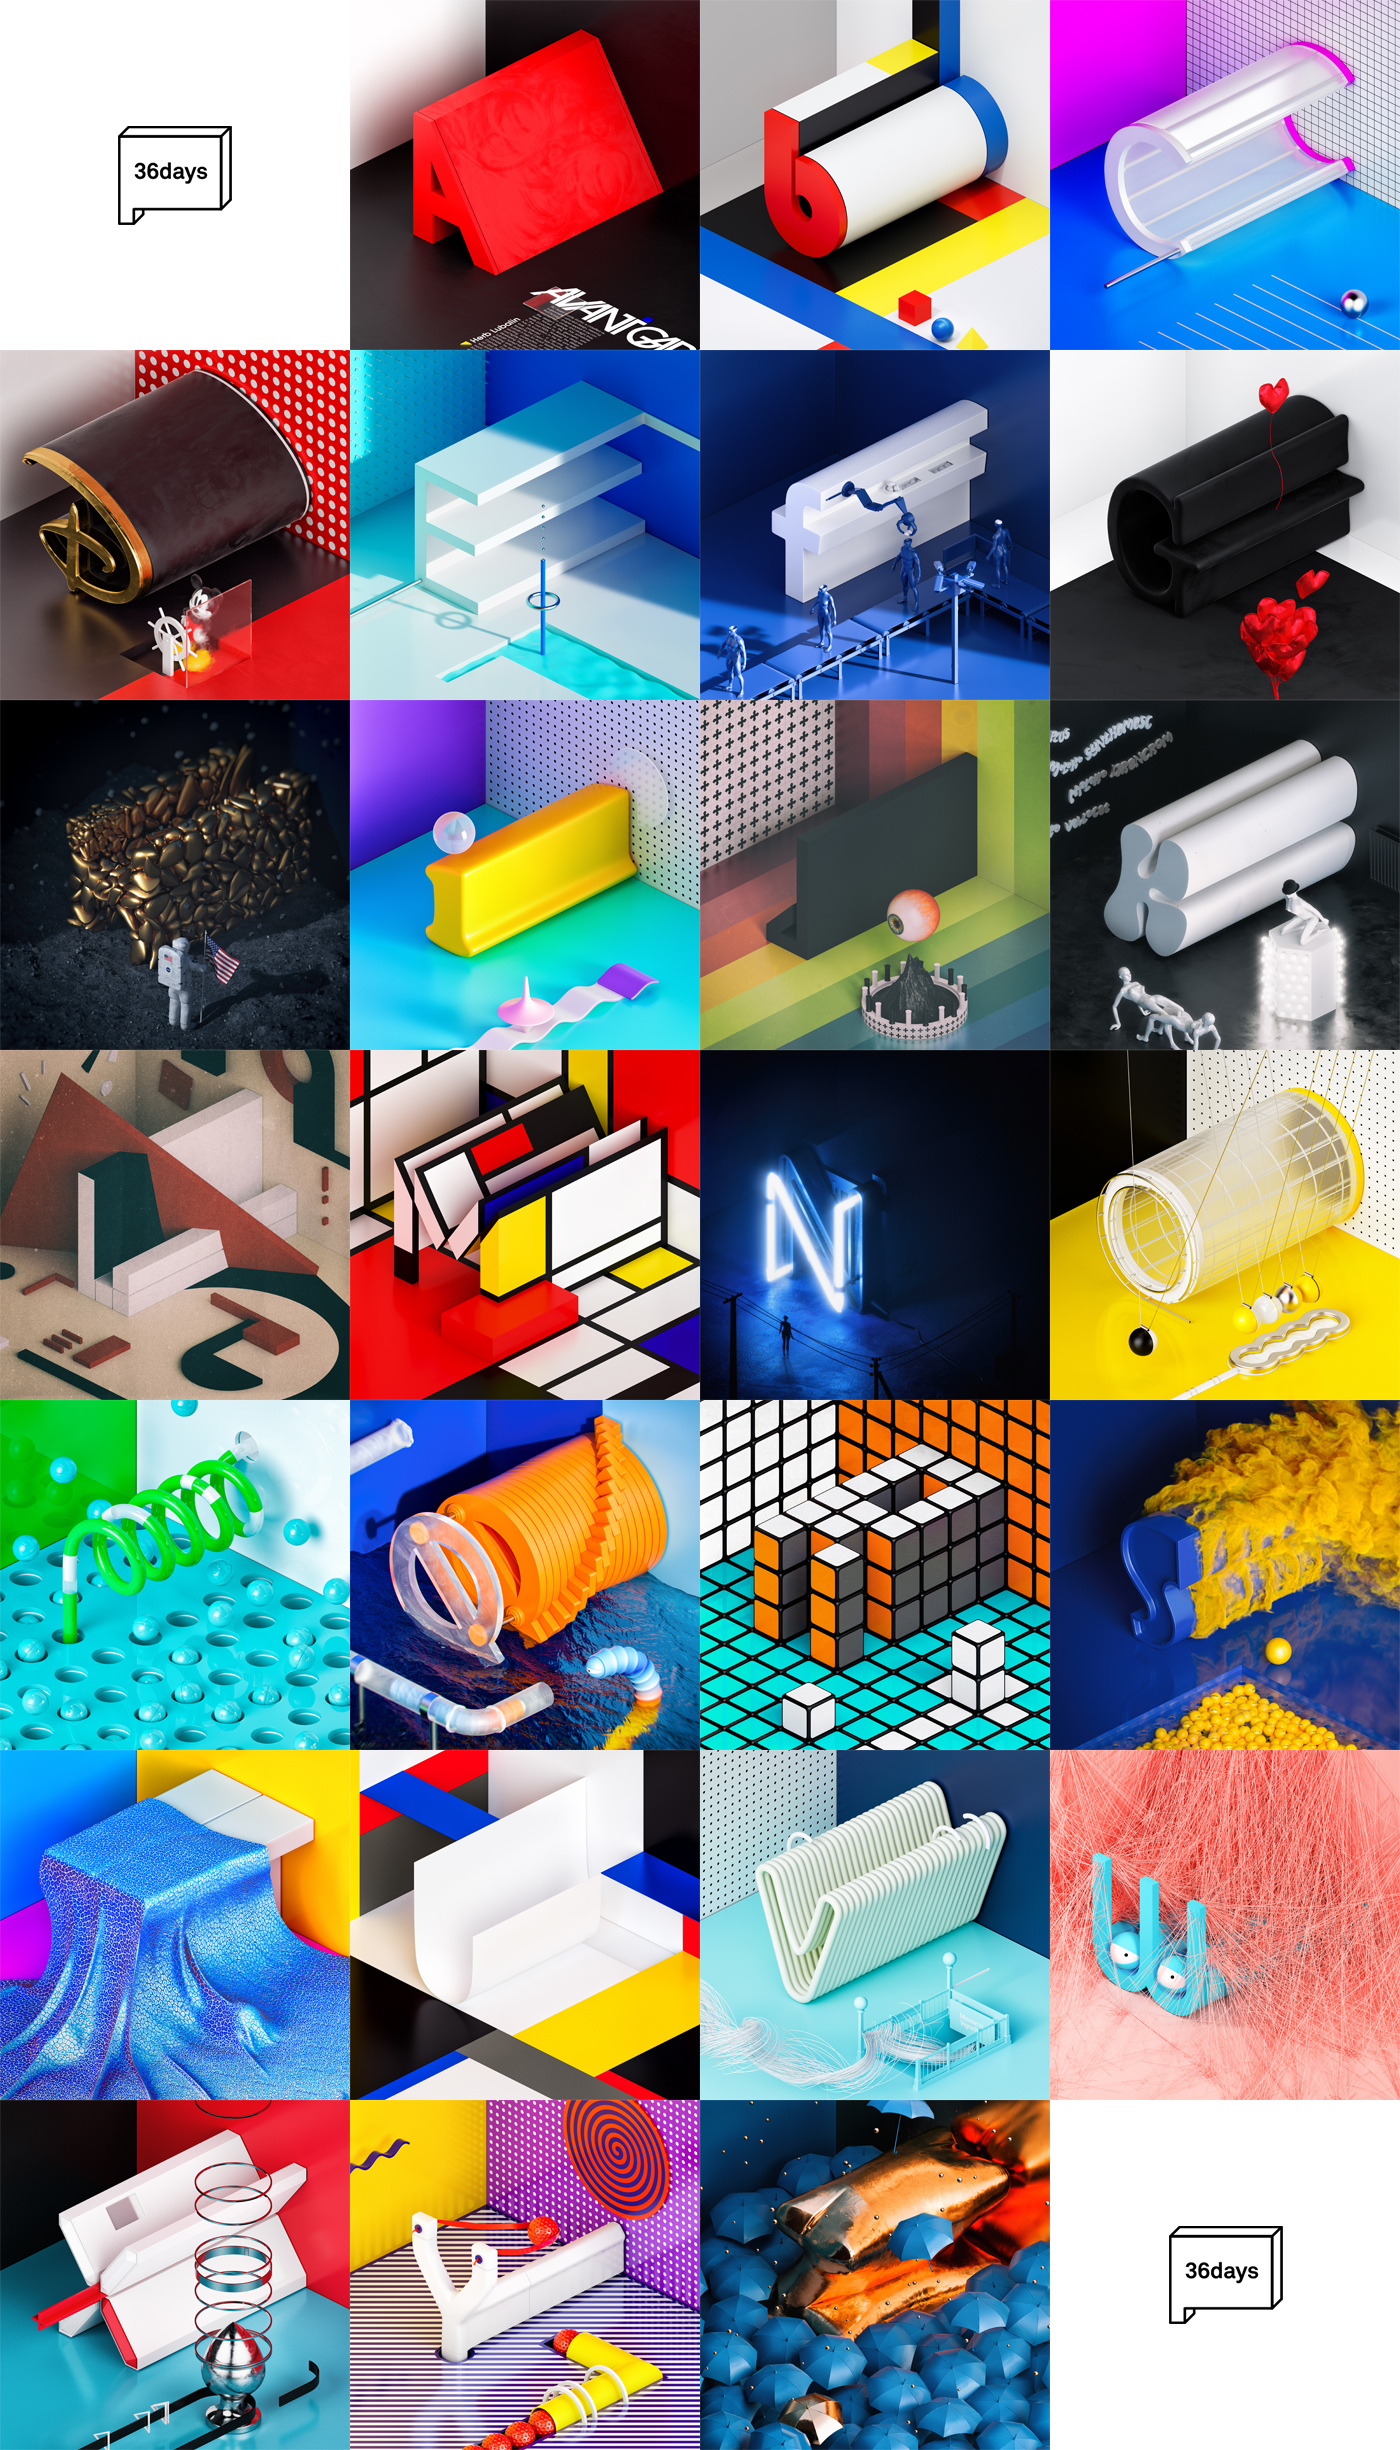 36daysoftype letter type typography   isometry vray 3ds max c4d alphabet